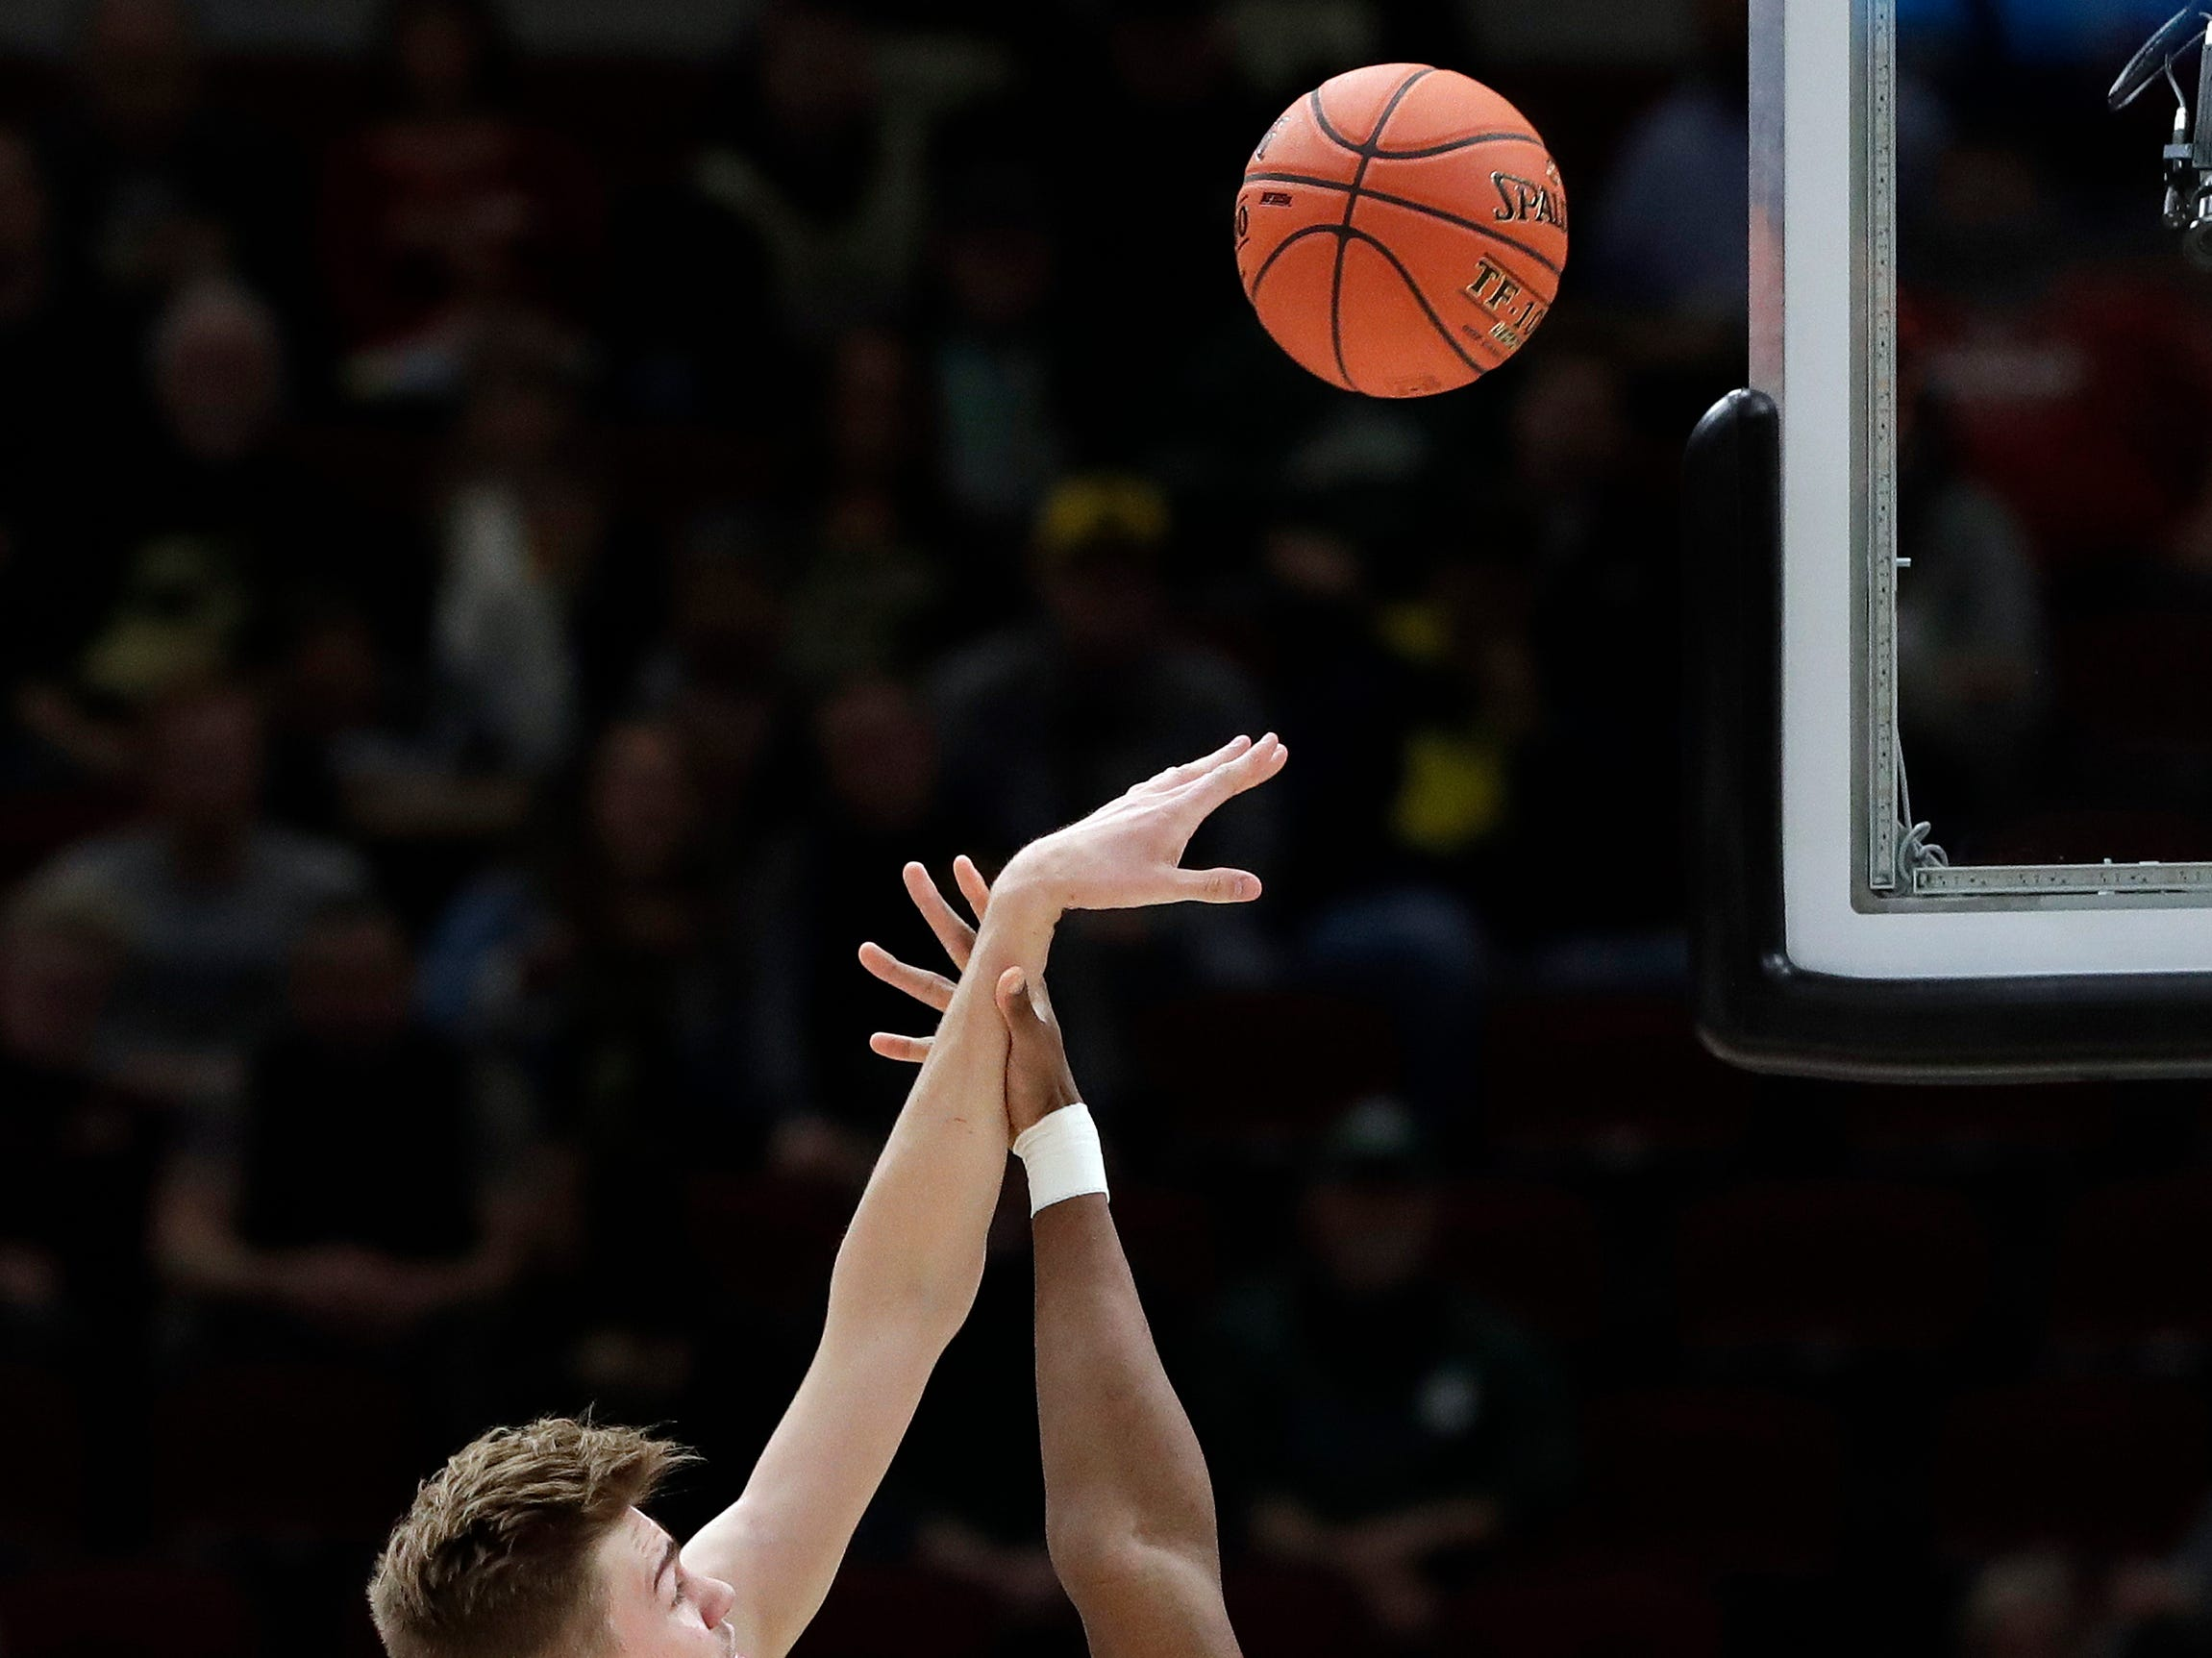 Purdue's Matt Haarms (32) shoots over Minnesota's Daniel Oturu (25) during the first half of an NCAA college basketball game in the quarterfinals of the Big Ten men's tournament, Friday, March 15, 2019, in Chicago. (AP Photo/Nam Y. Huh)